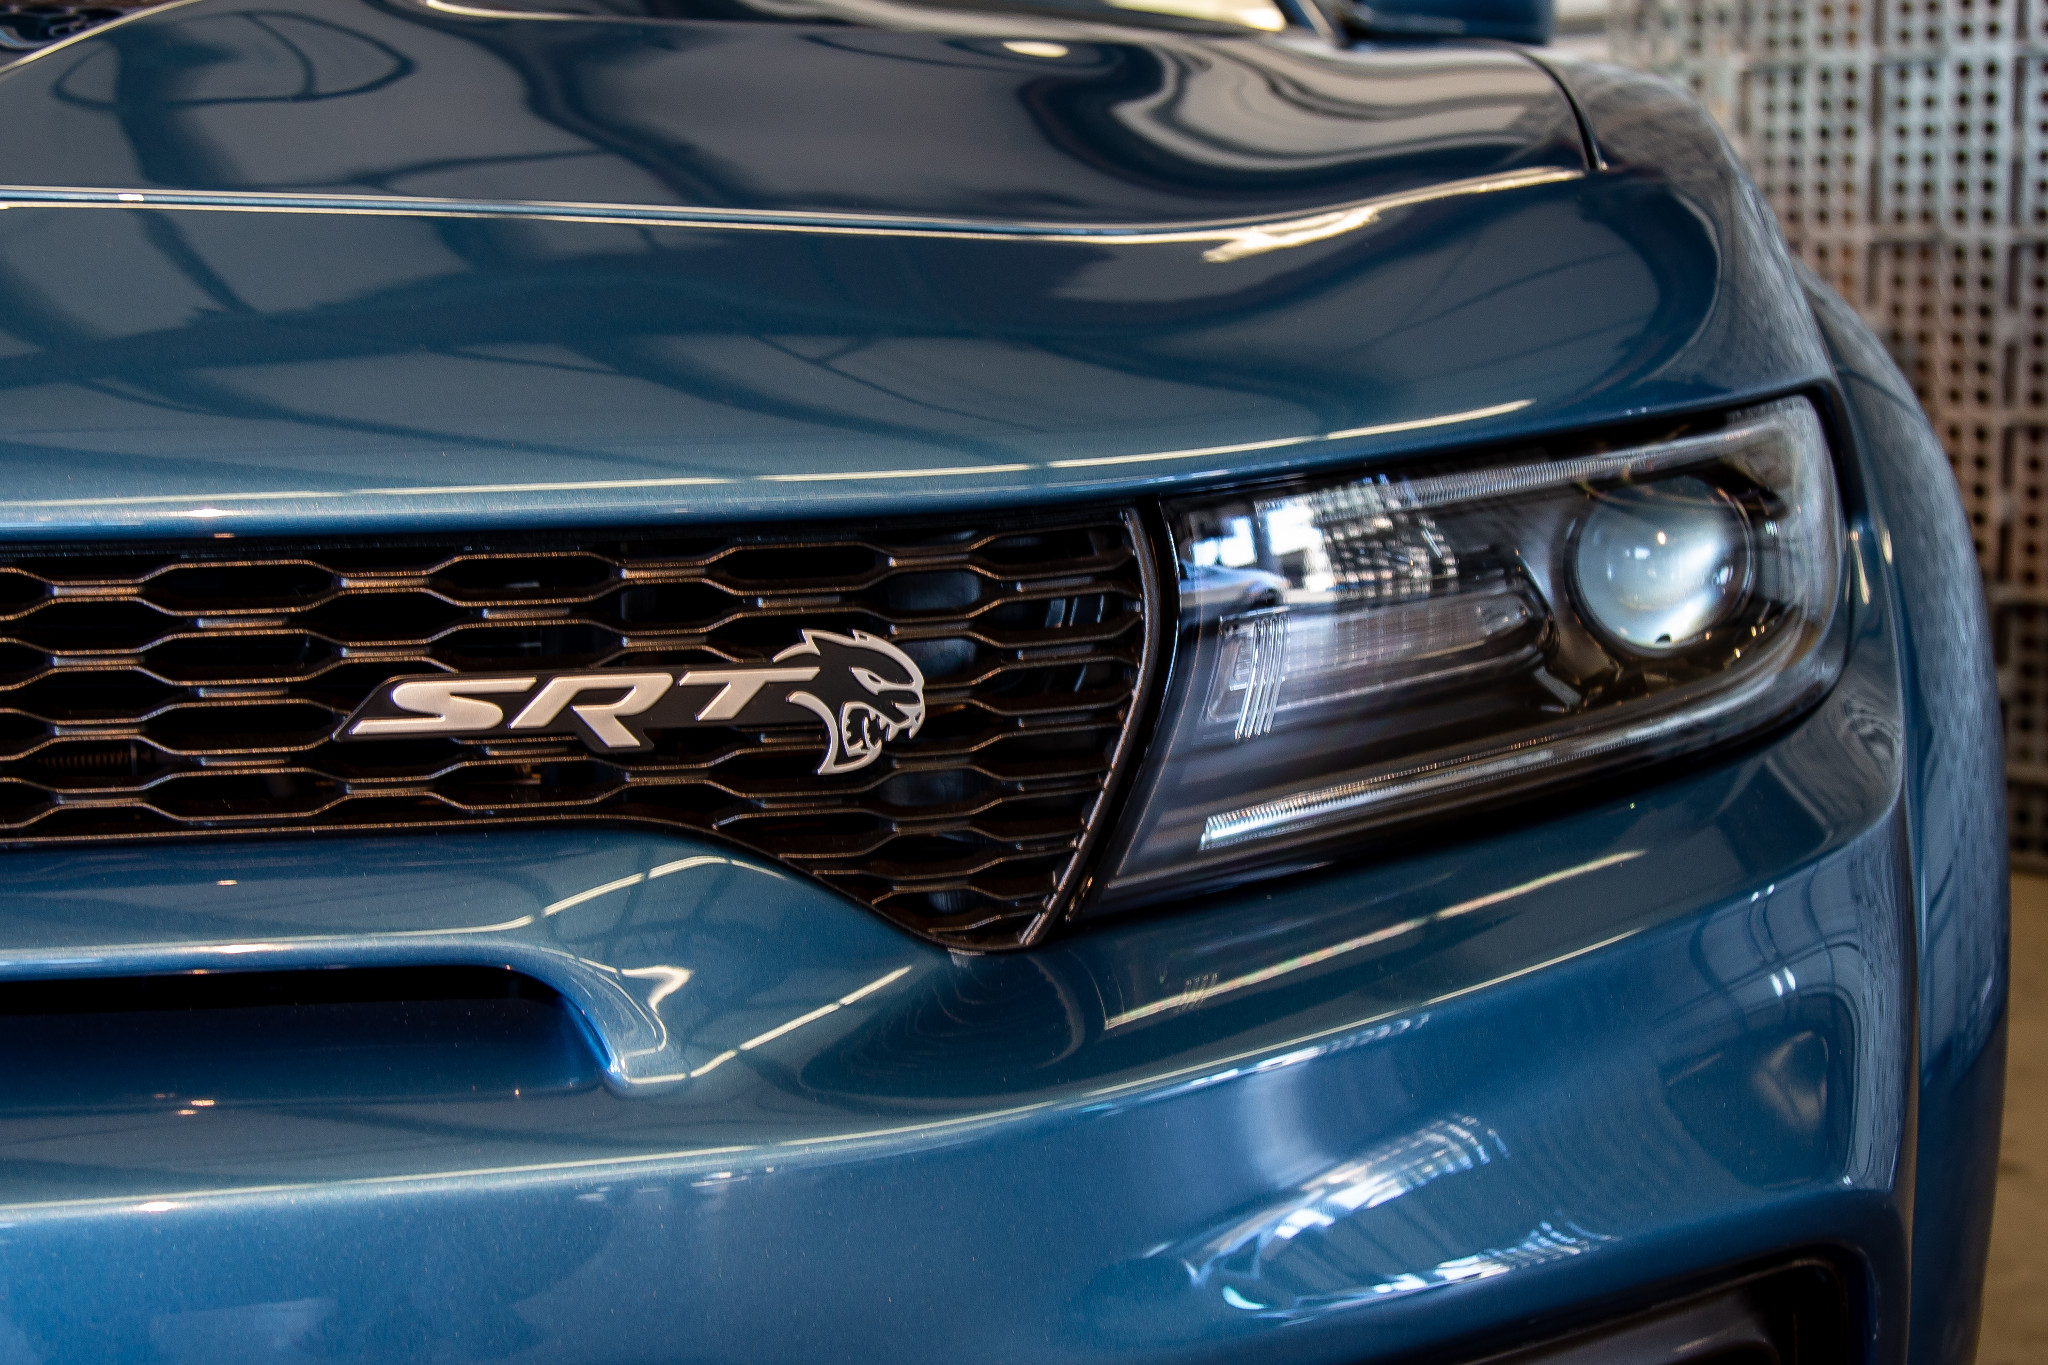 Ohhh Say Can You Hemi Dodge Powers Up Patriotic Preview Of 2021 Srt Lineup News Cars Com